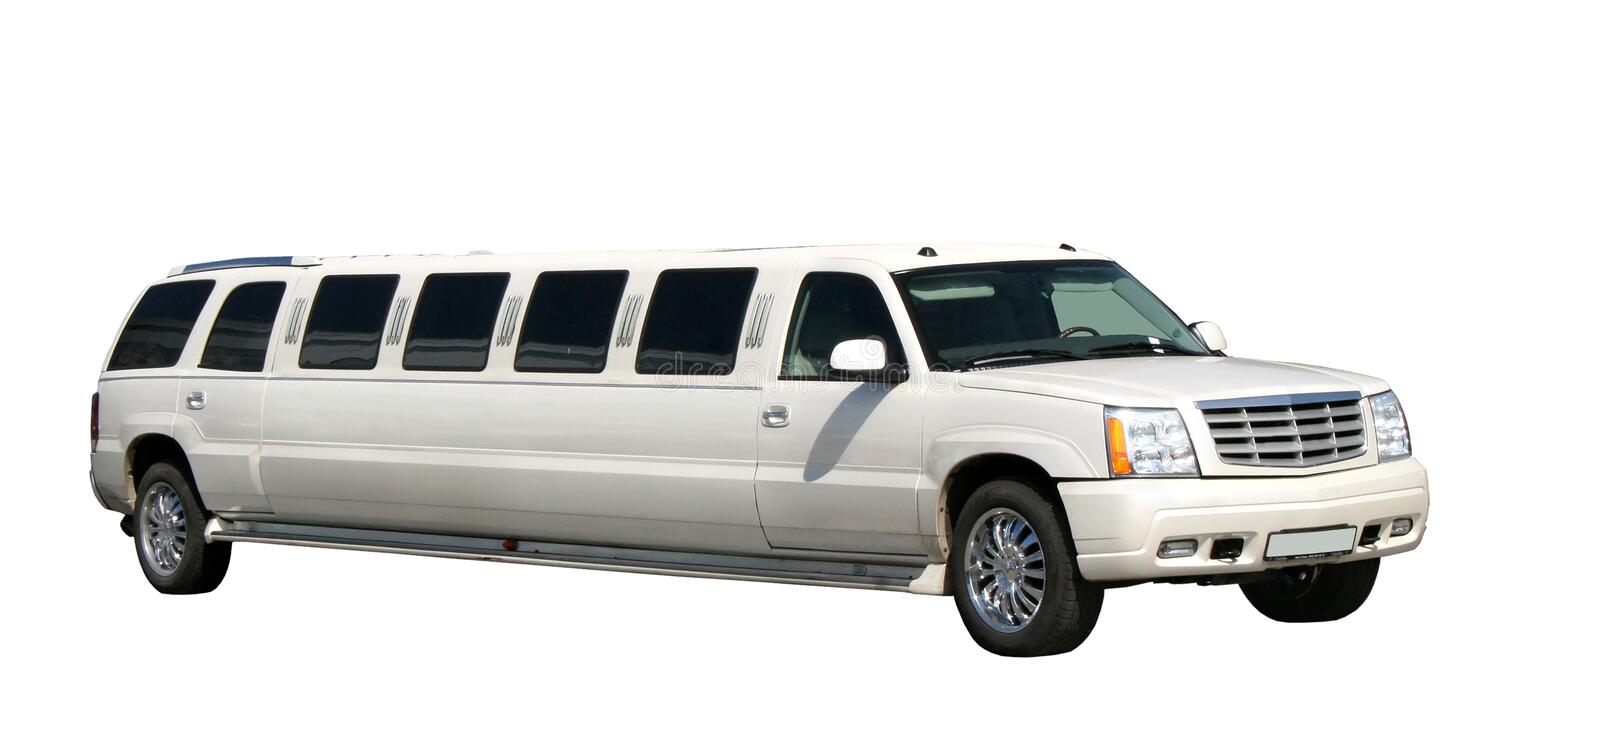 Limousine. White limousine isolated on white royalty free stock images